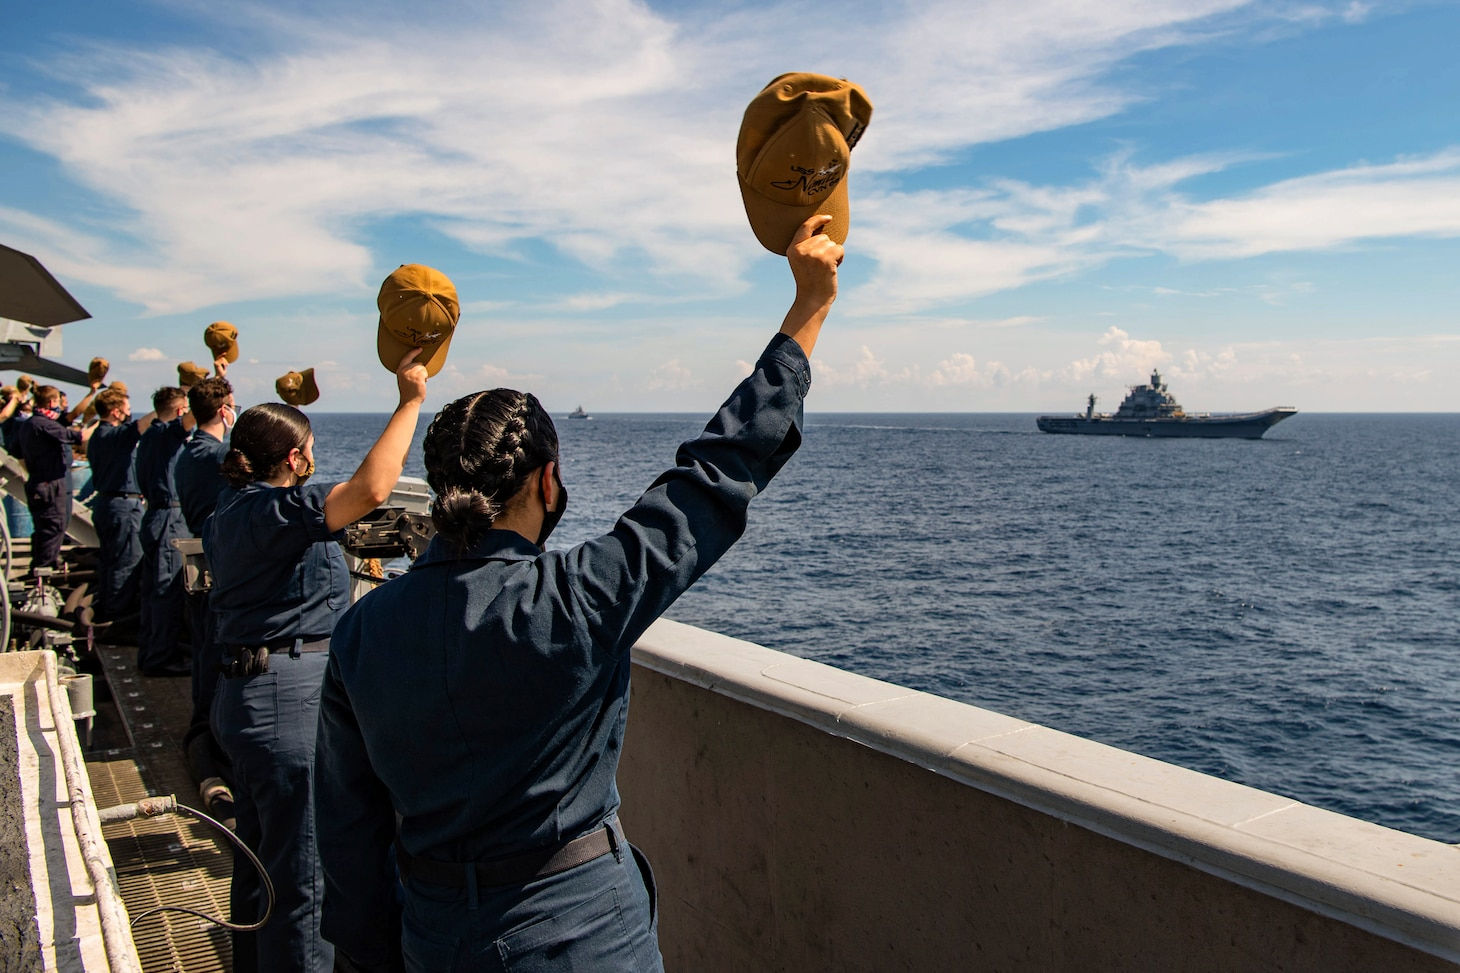 Sailors standing on a ship wave their hats at a ship sailing by.